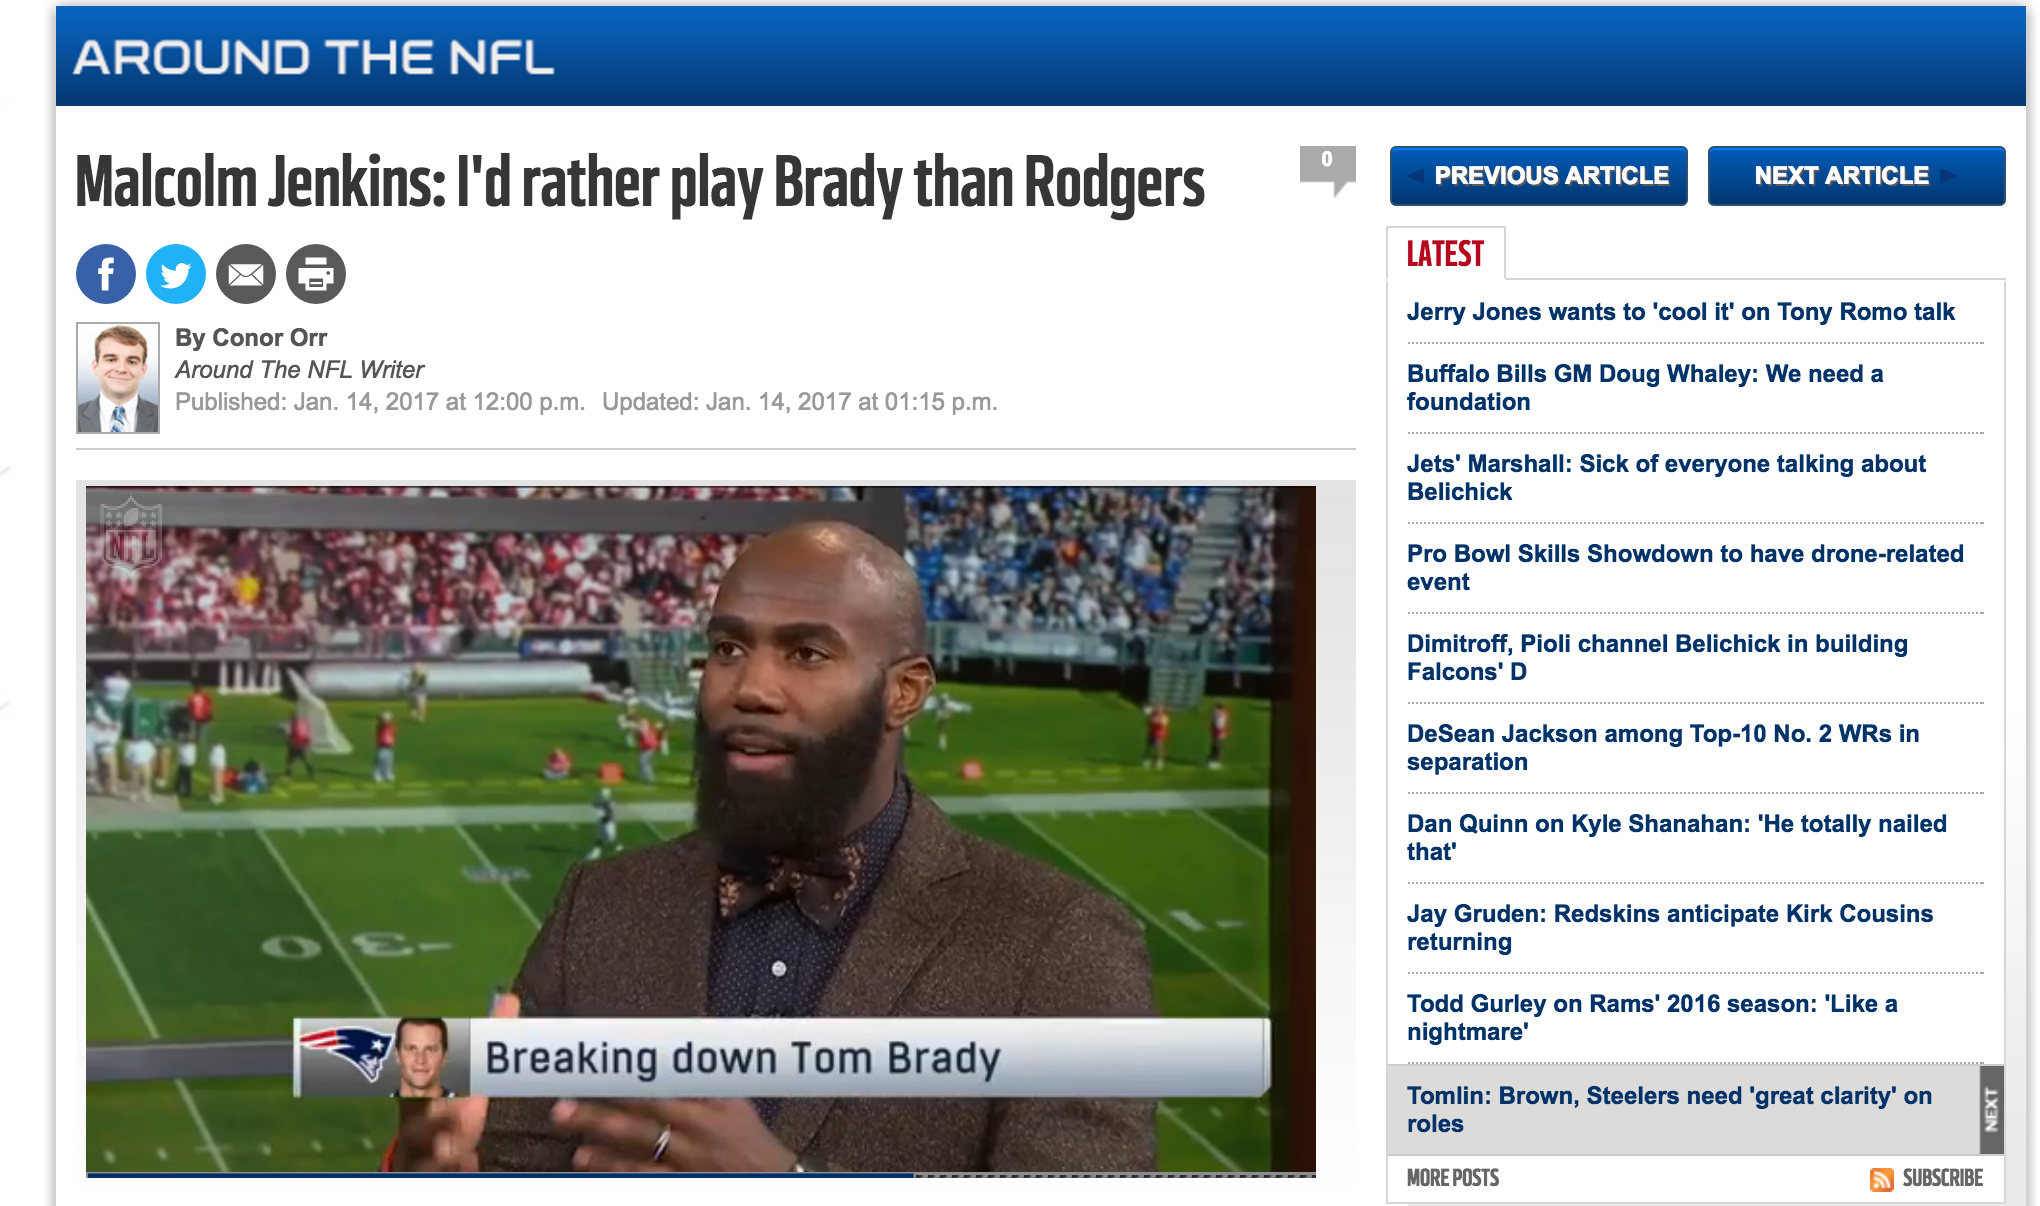 I'D RATHER PLAY BRADY THAN ROGERS - Tom Brady is arguably the greatest NFL quarterback of all time, and Aaron Rodgers is one of the all-time greats. But which player on his own presents the biggest matchup problem for a defensive player?